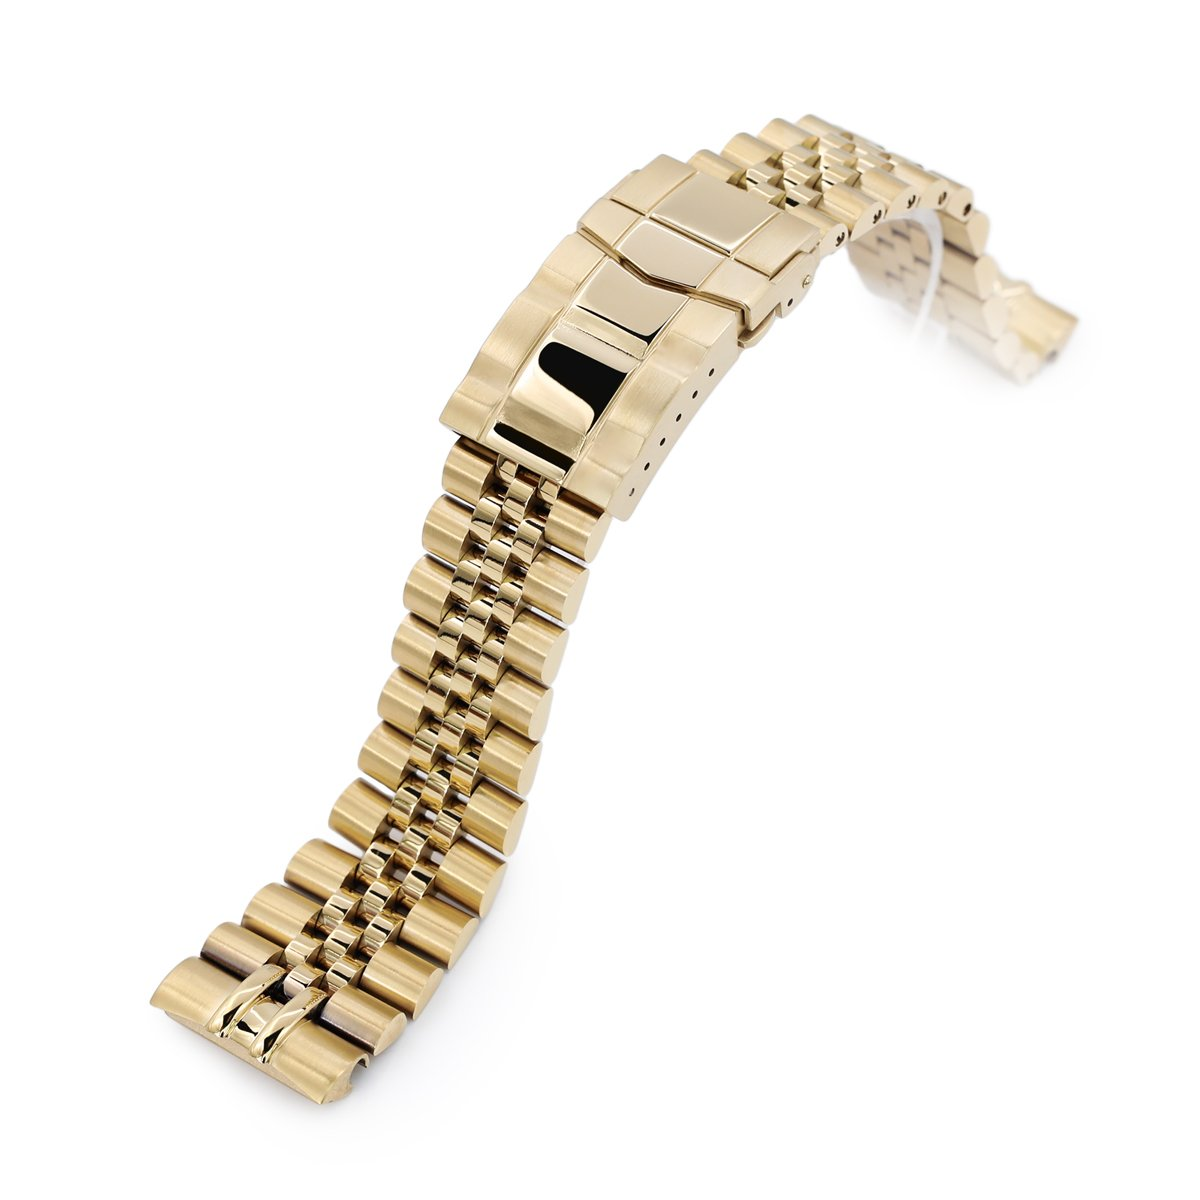 22mm Super-J Louis 316L Stainless Steel Watch Bracelet for Seiko Gold Turtle SRPC44 SUB Clasp full IP Gold Strapcode Watch Bands